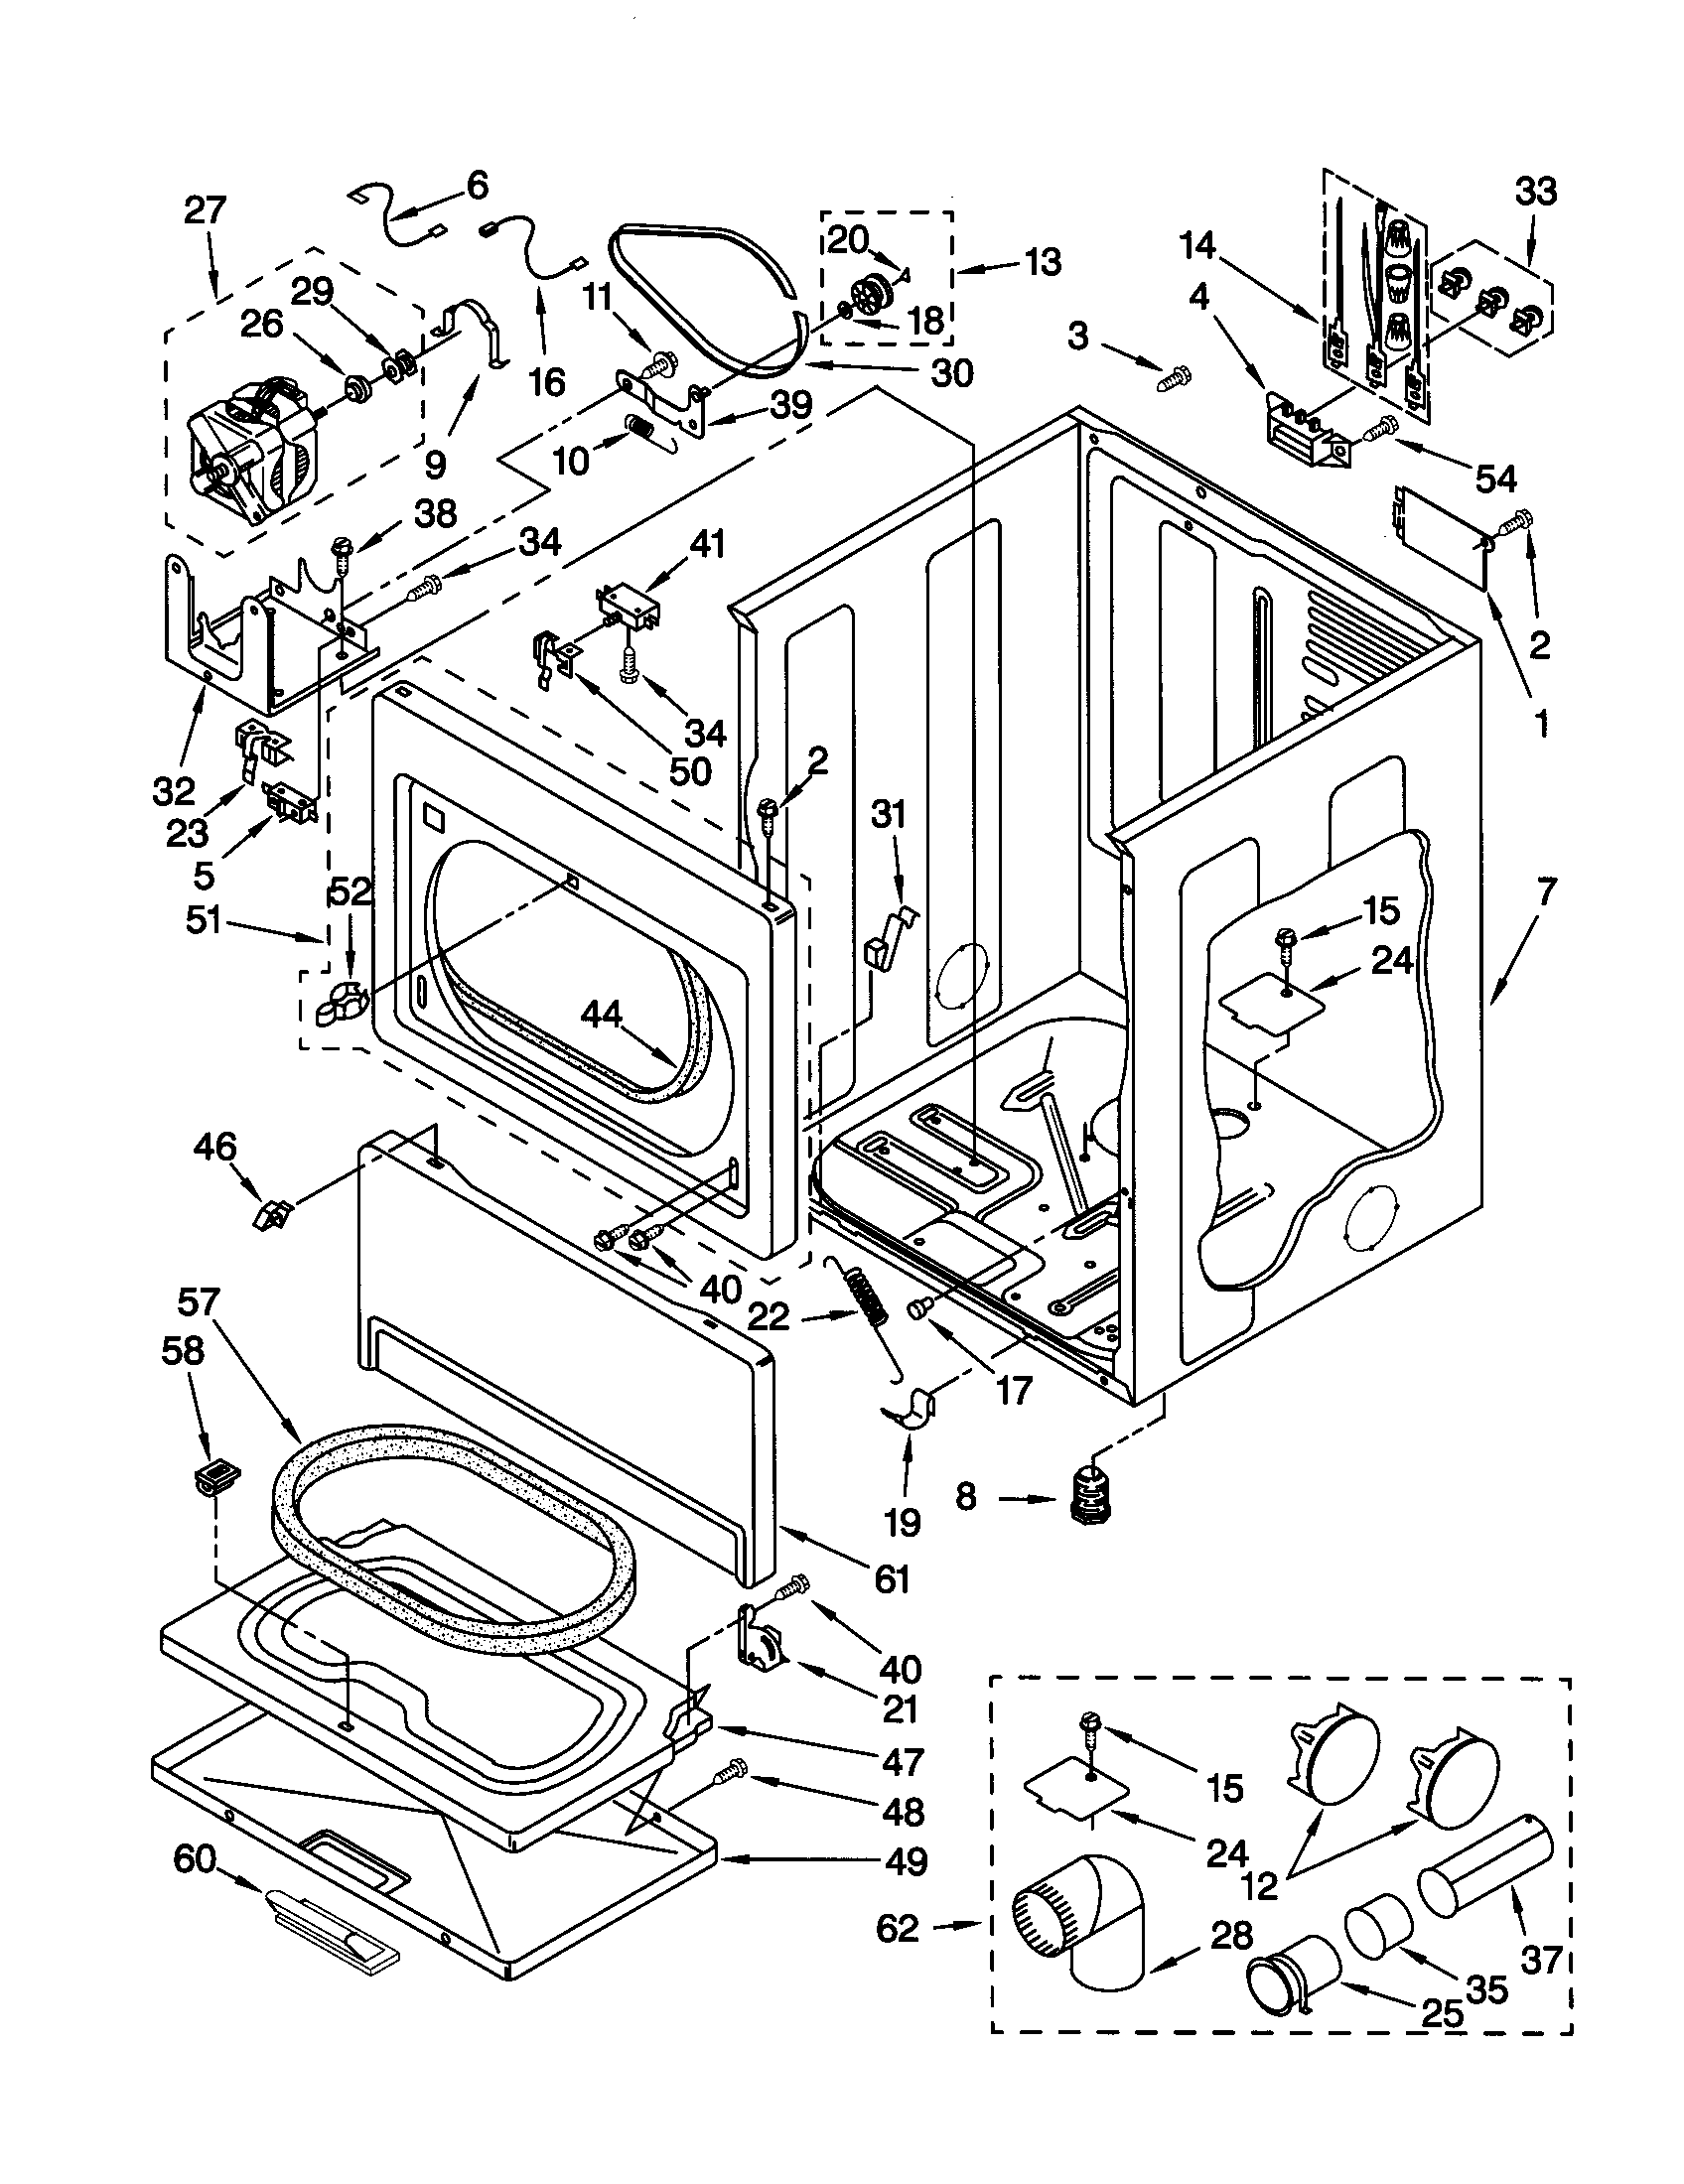 CABINET Diagram & Parts List for Model 11060902990 Kenmore